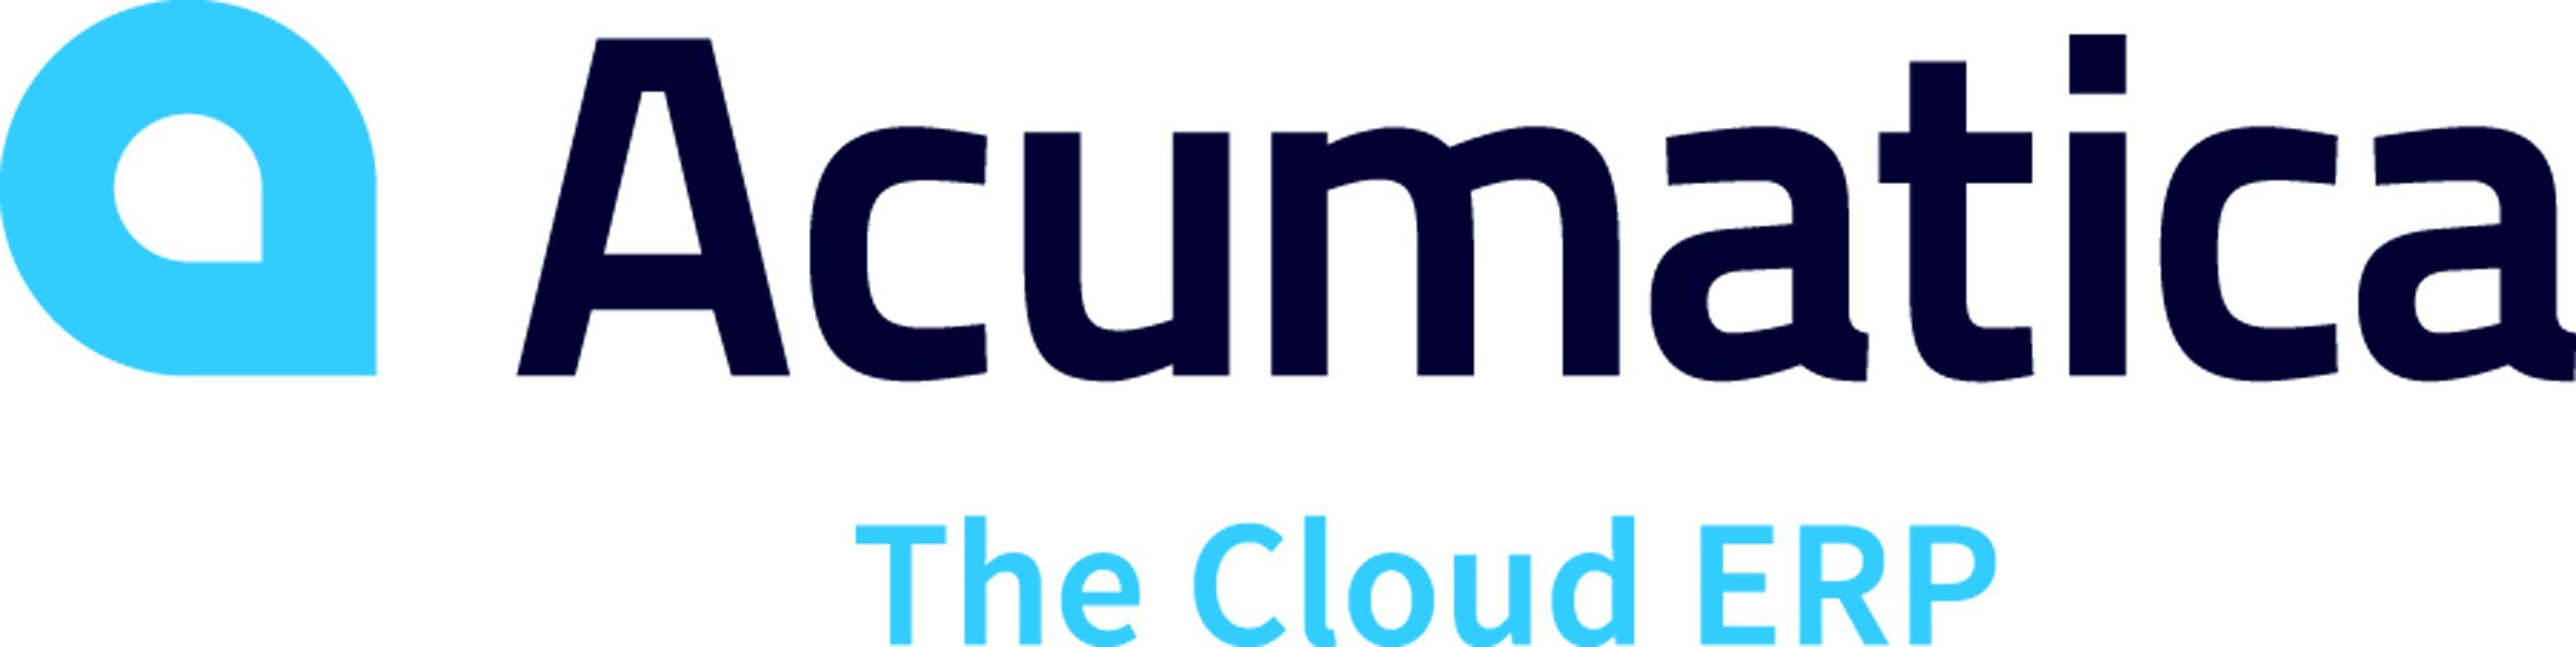 Acumatica: The Cloud ERP (PRNewsfoto/Acumatica)